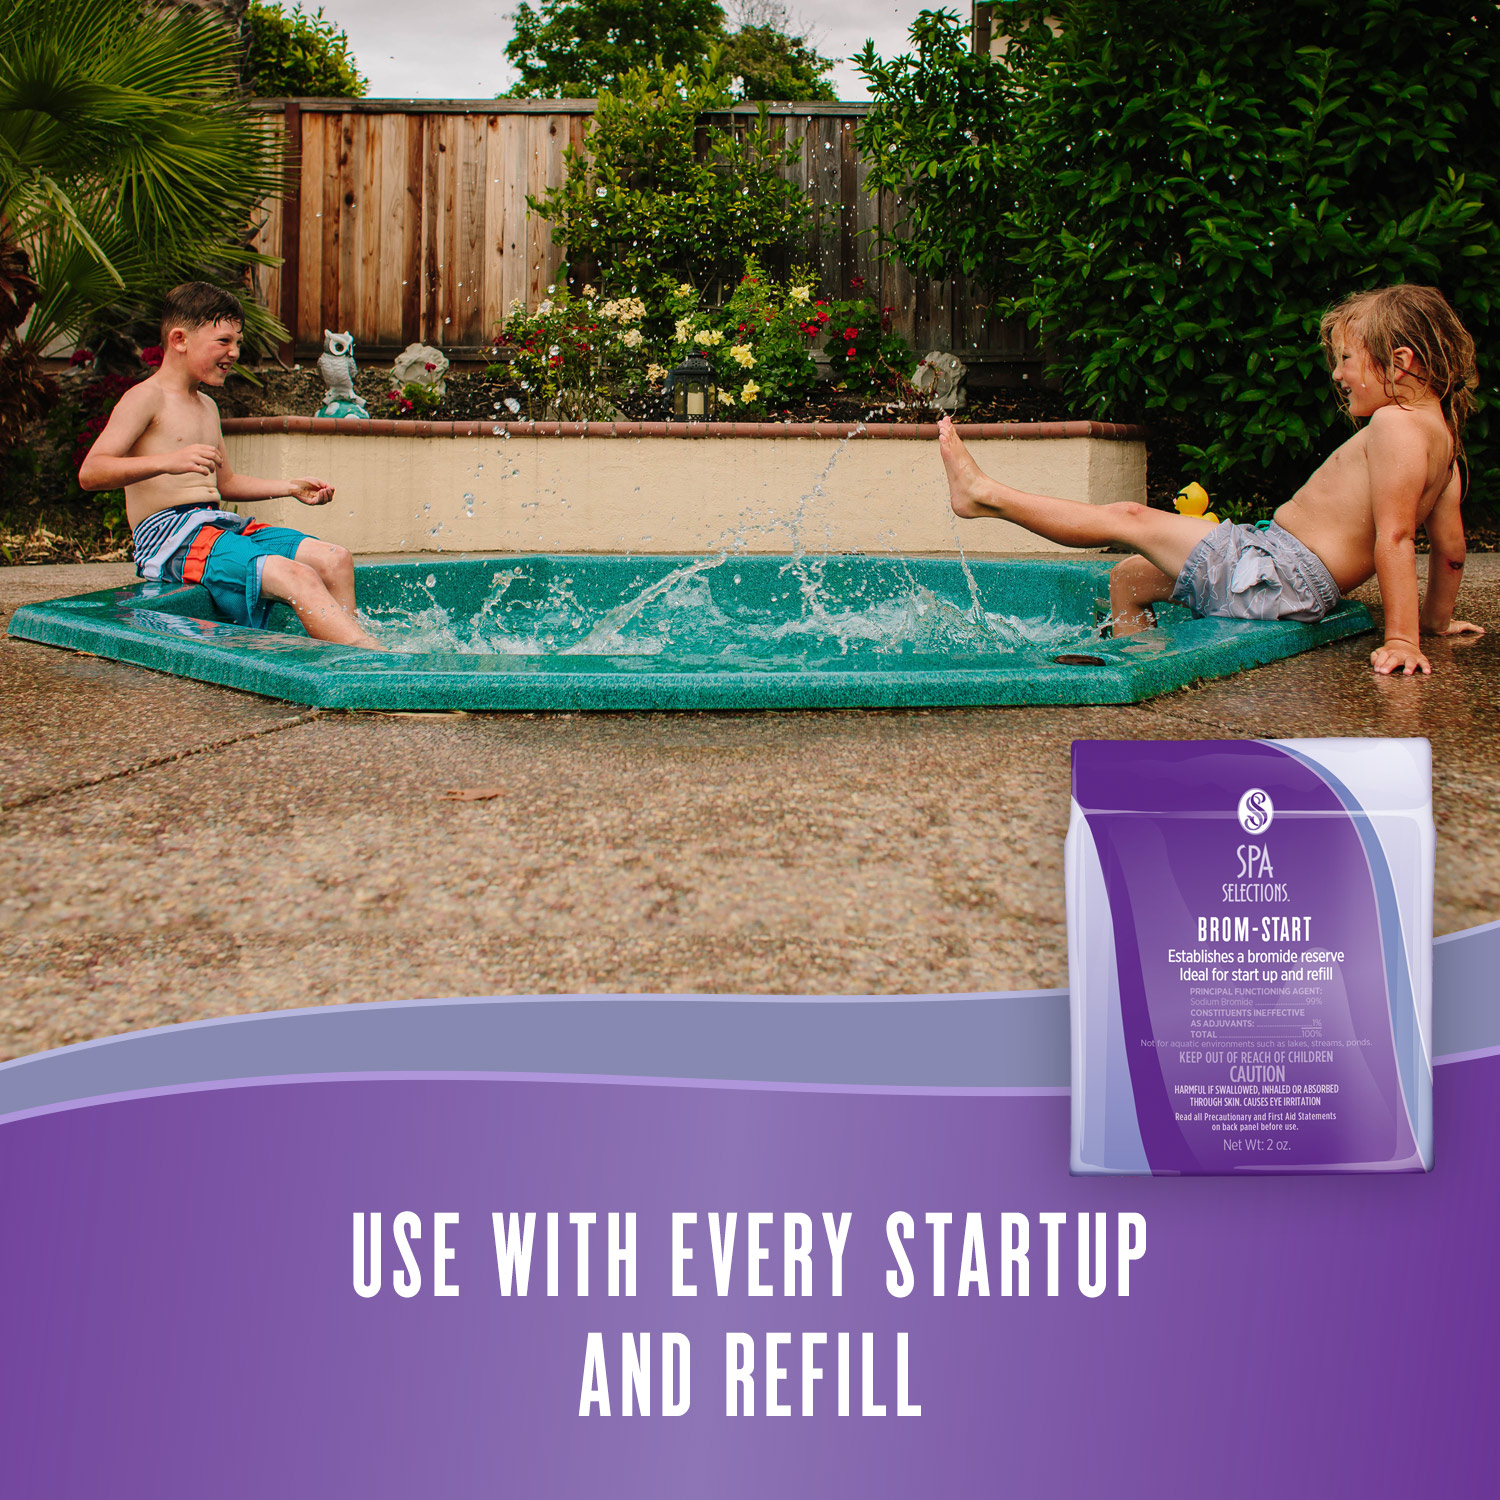 Little boys slashing each other in an outdoor hot tub. Spa Selections Brom-Start, use with every startup and refill.